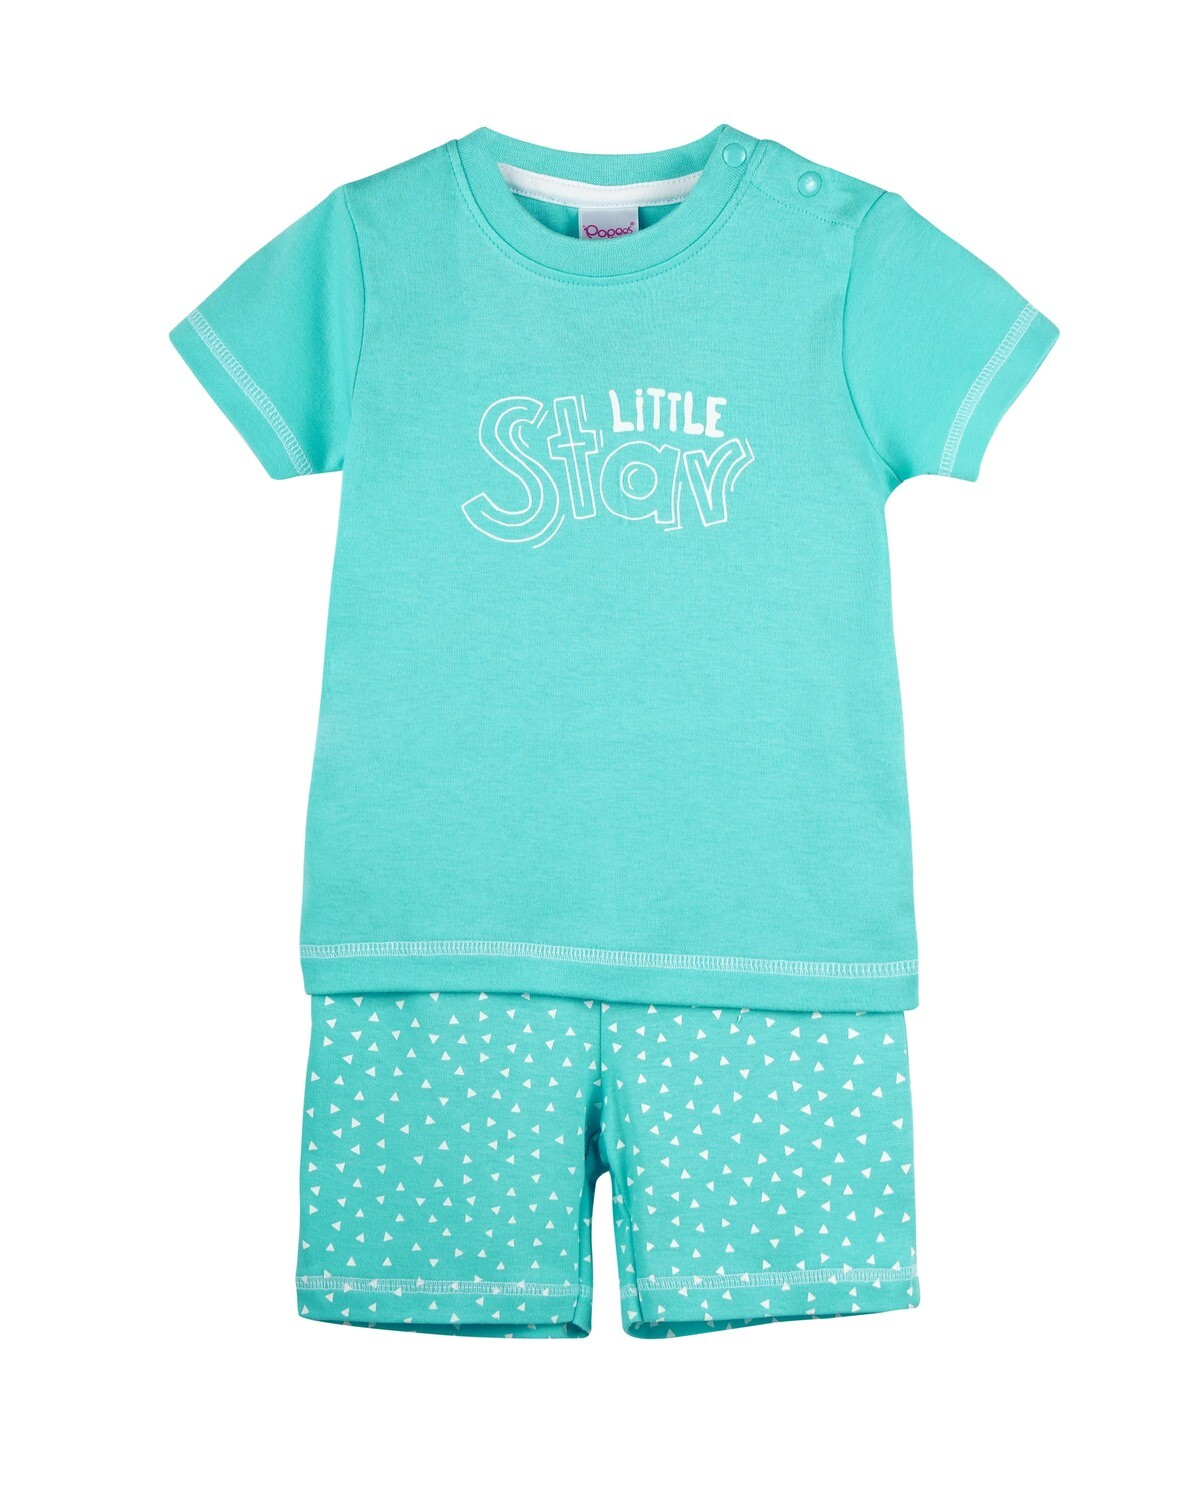 POP-HS-B-TS-003 Water Fall Half Sleeve Top and Shorts for Baby Boys